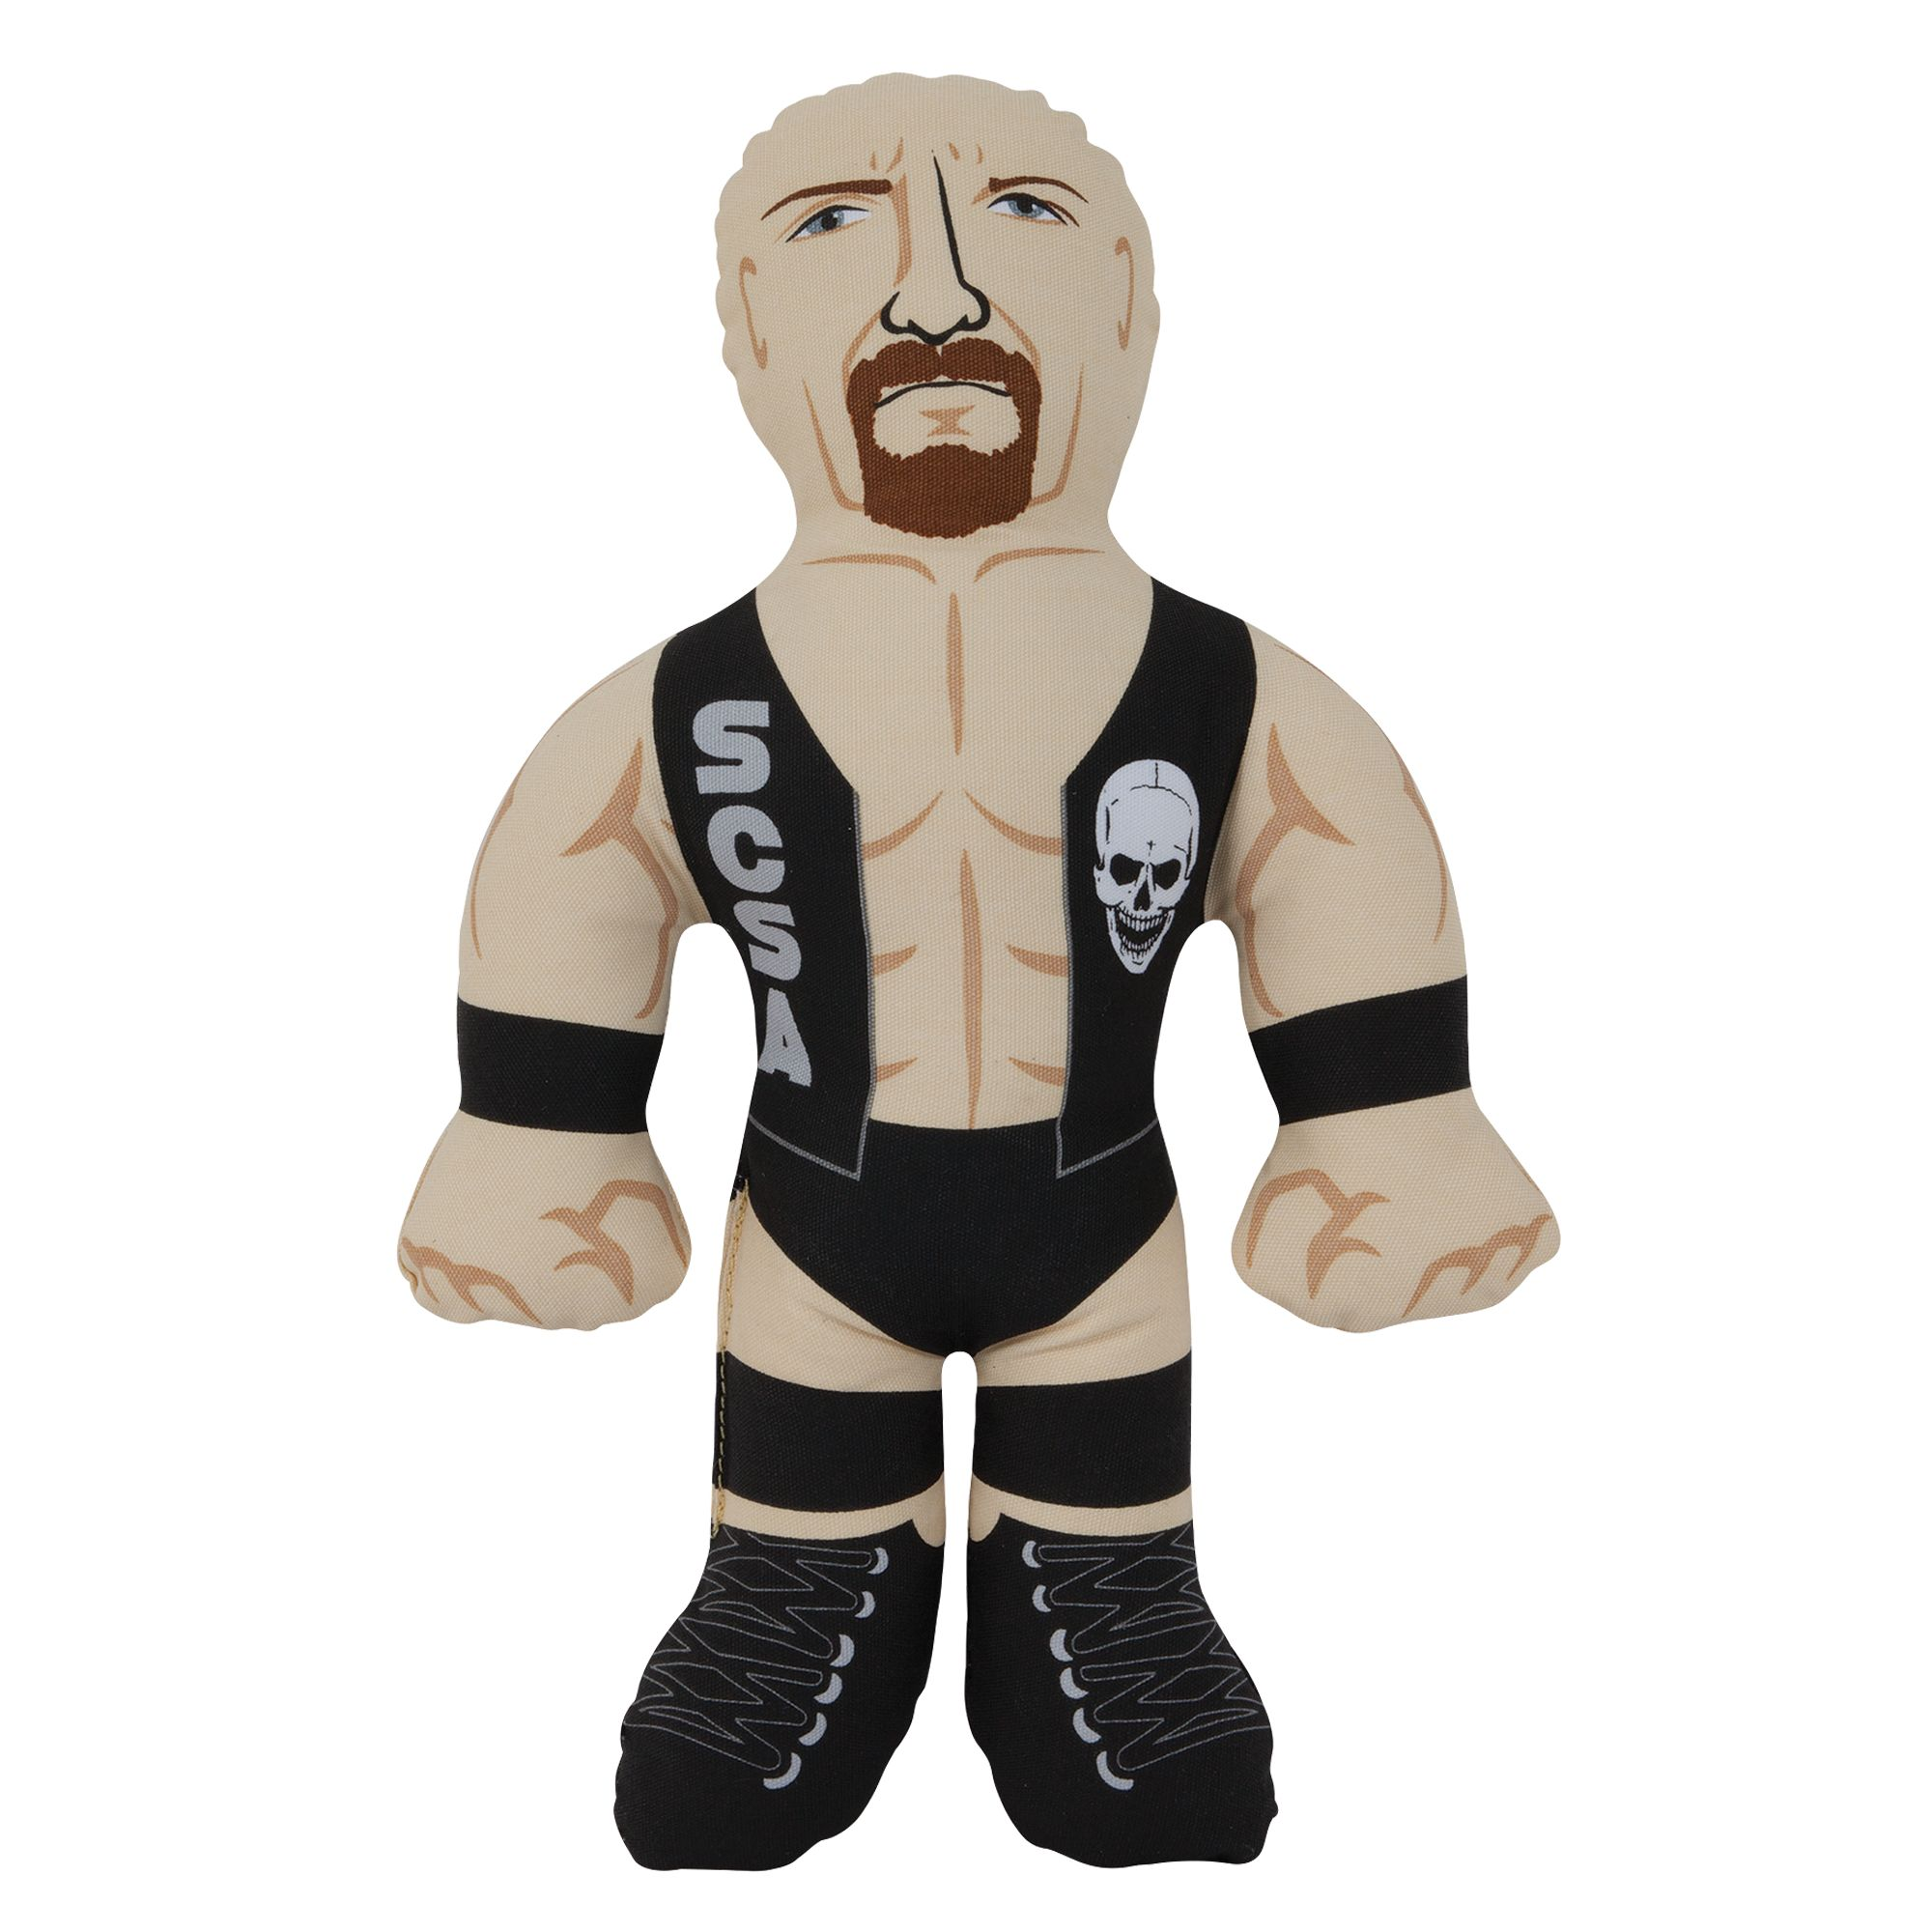 WWE Steve Austin Plush Dog Toy 5259977